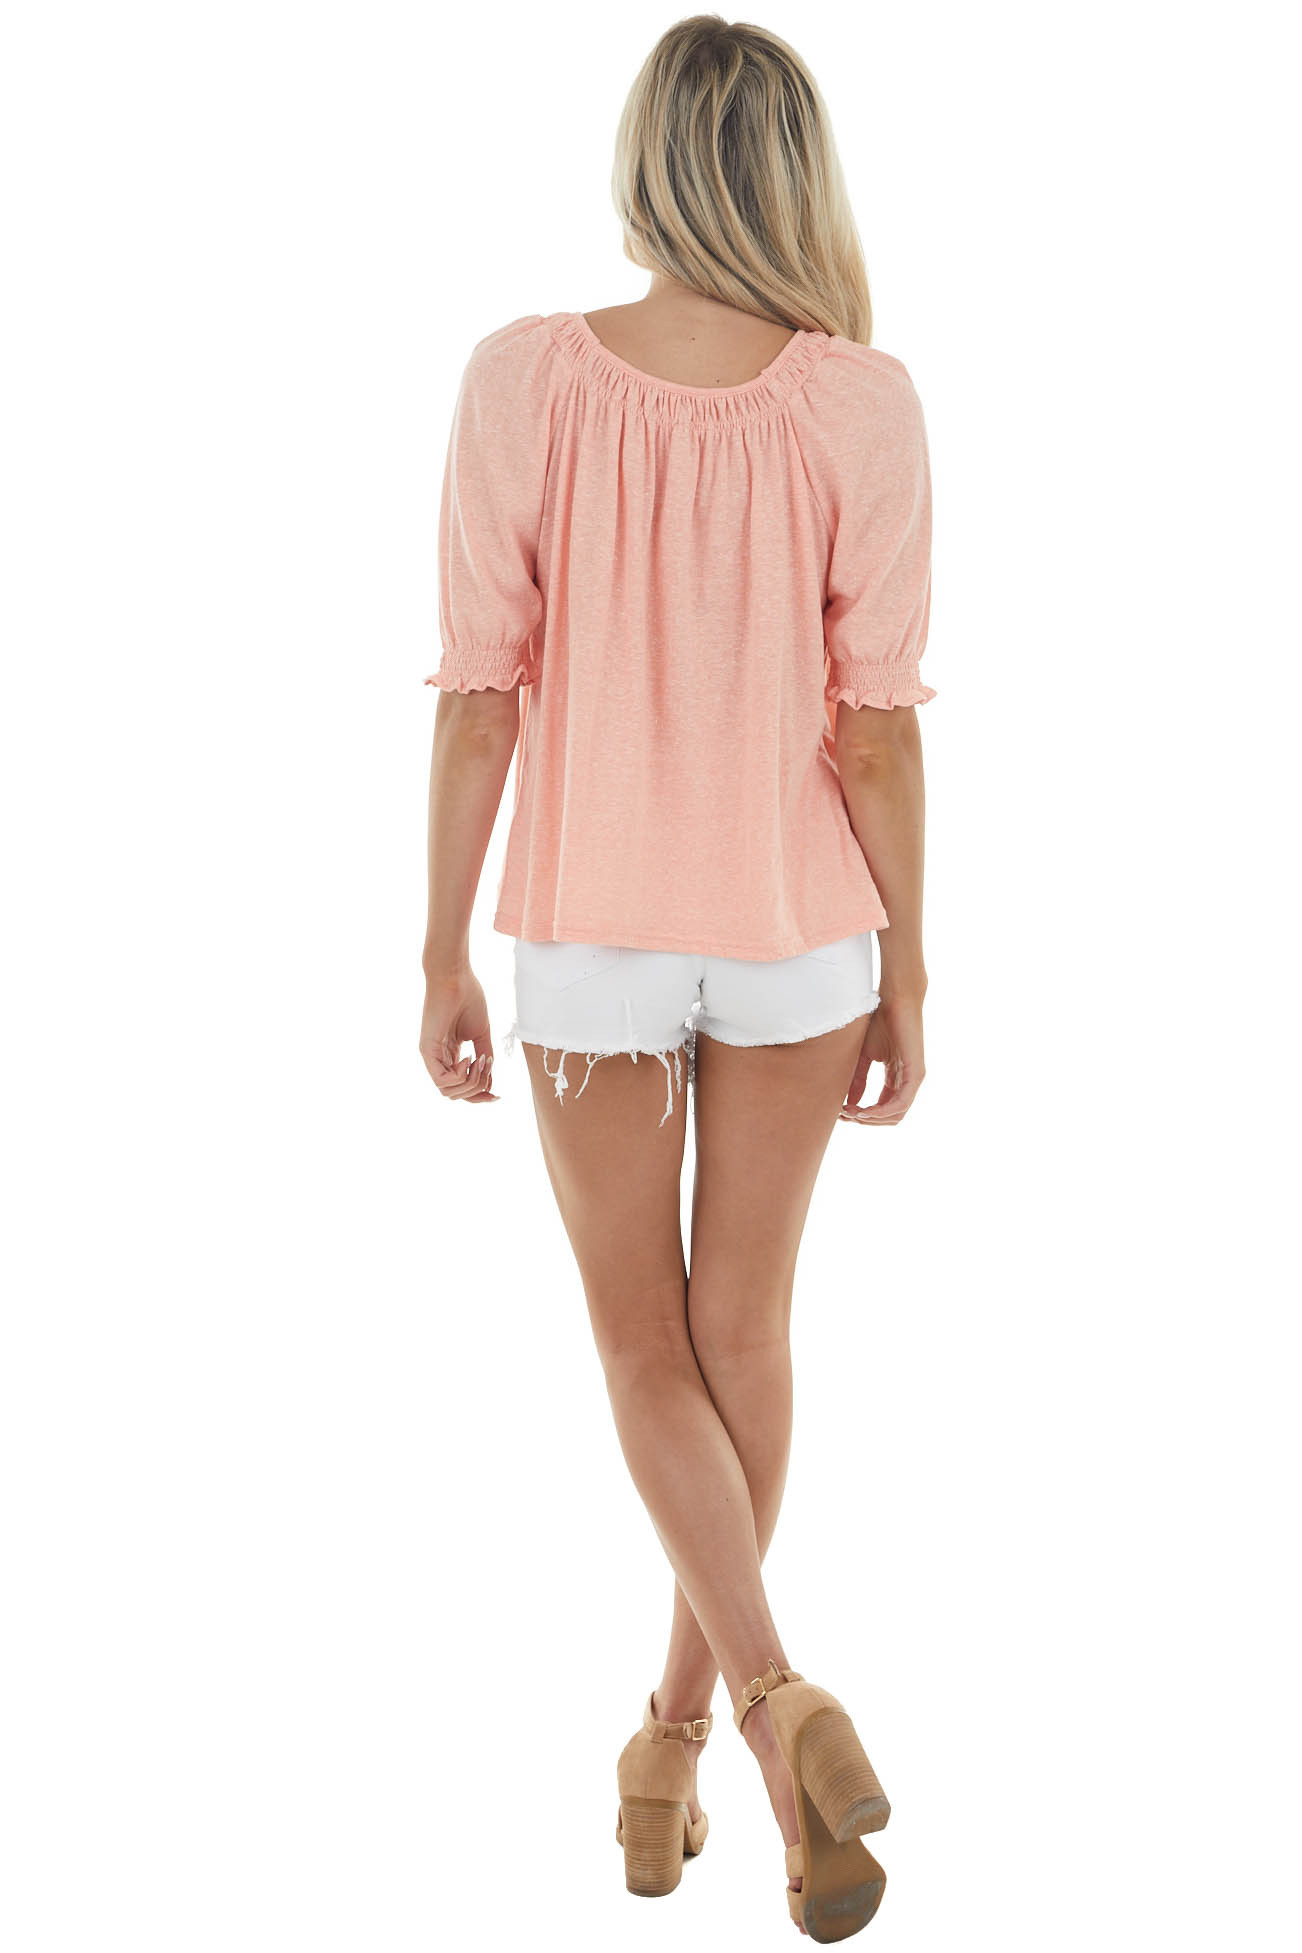 Coral Two Tone Short Sleeve Top with Ruffle Details